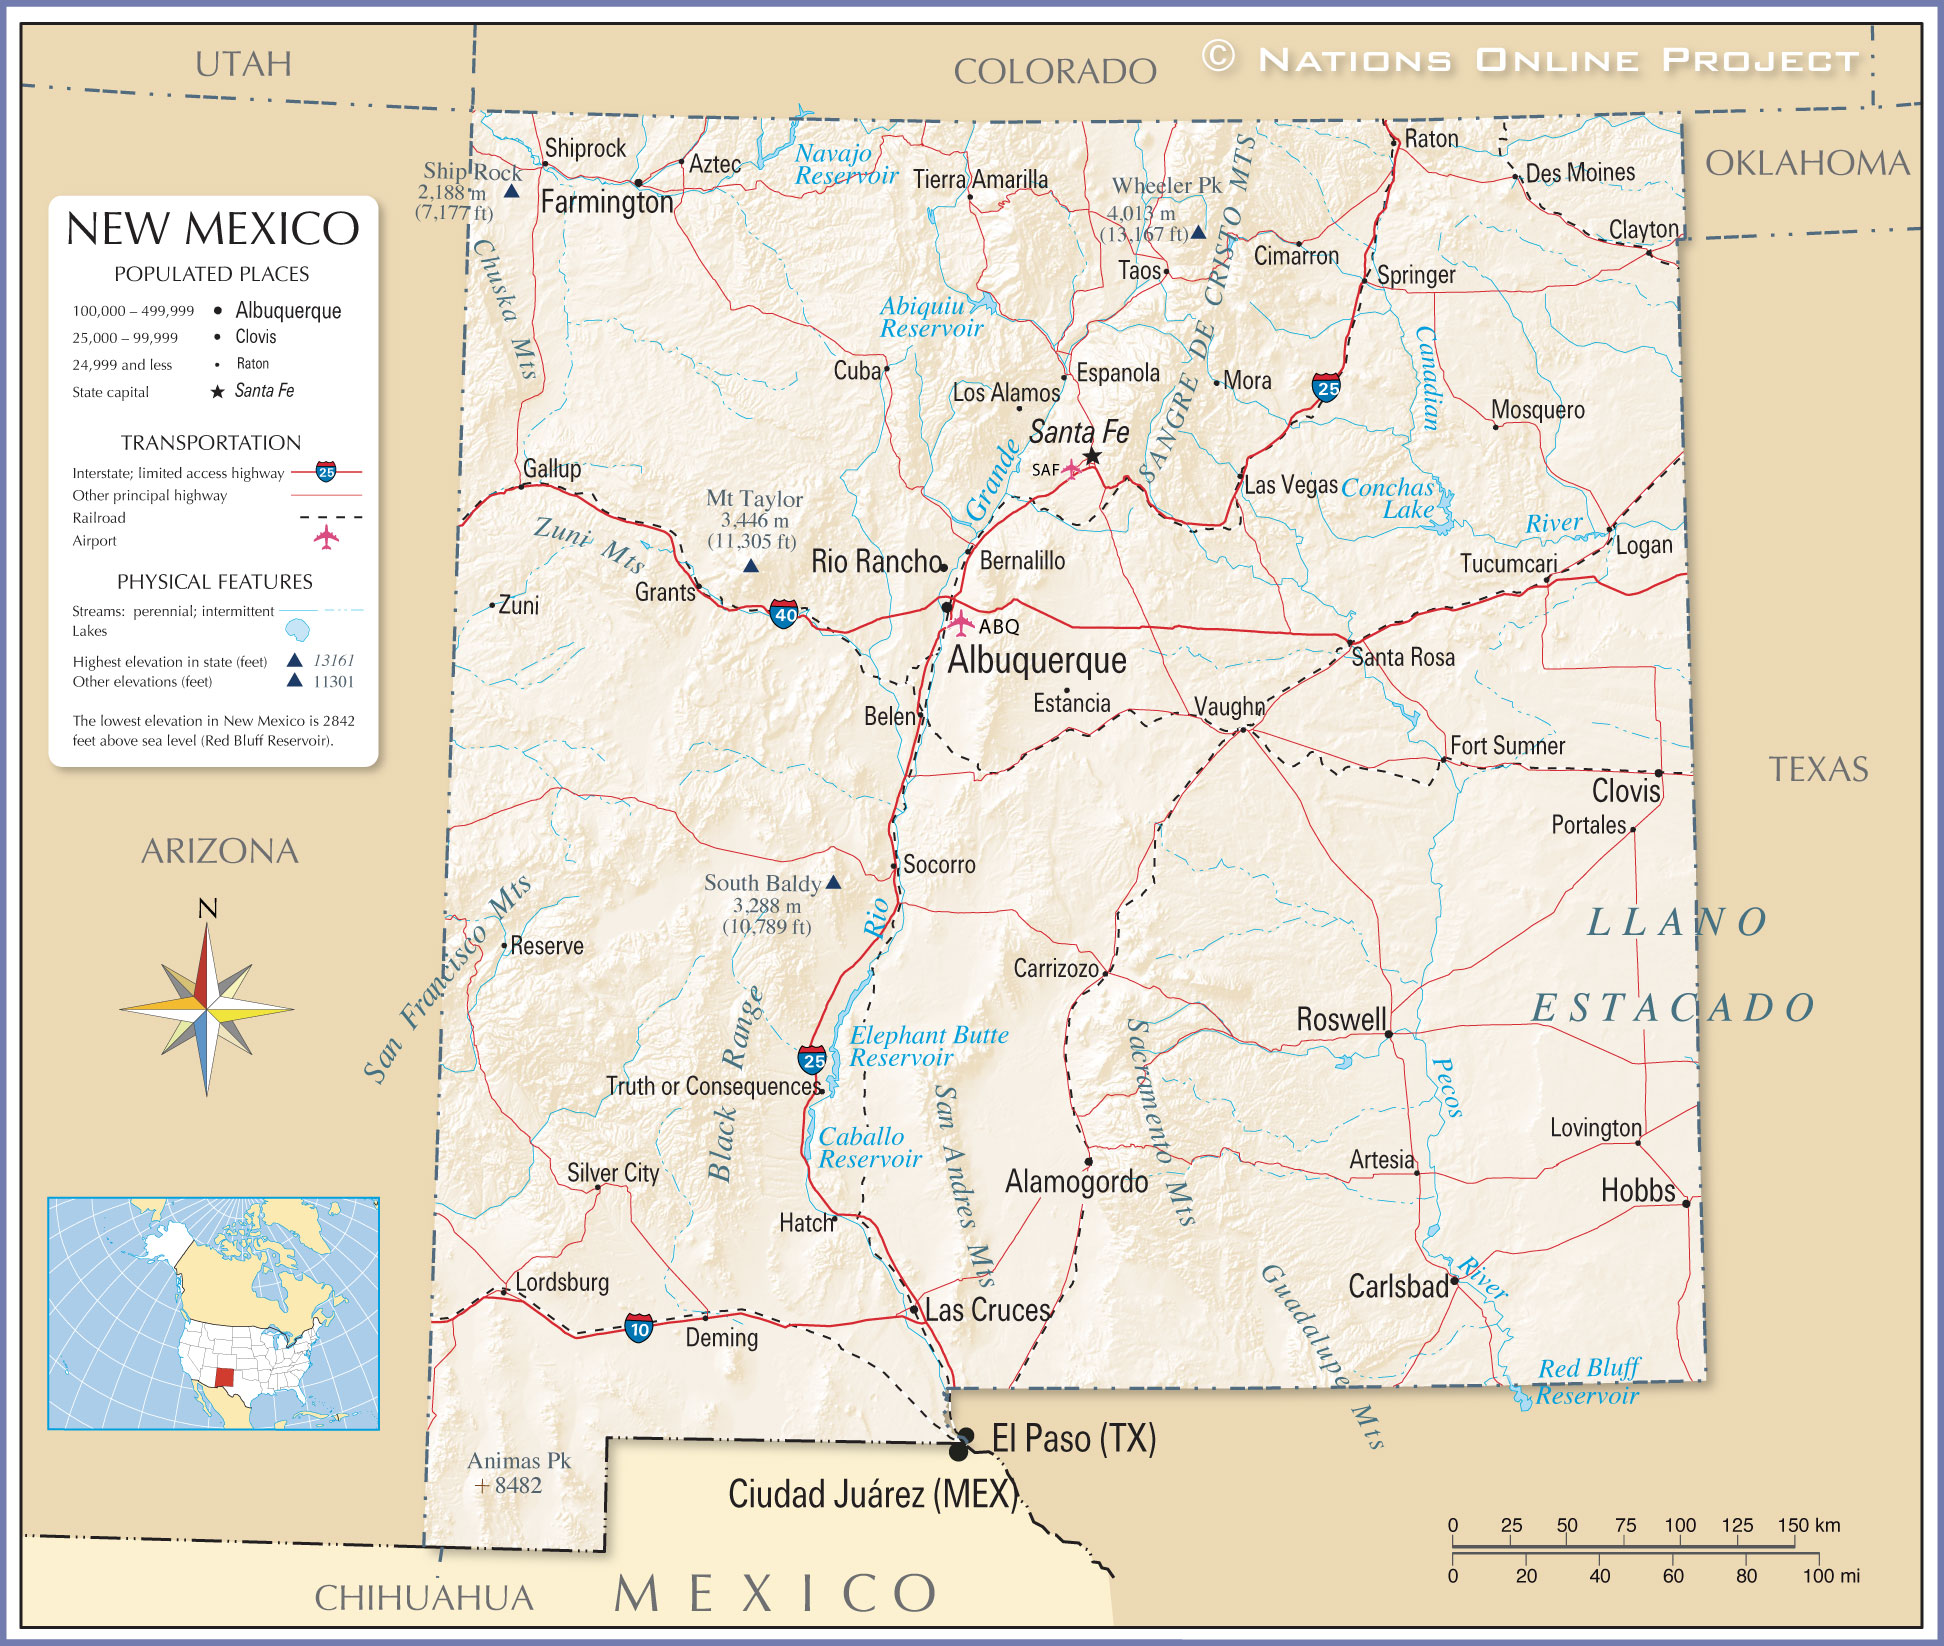 Reference Maps of New Mexico USA Nations line Project